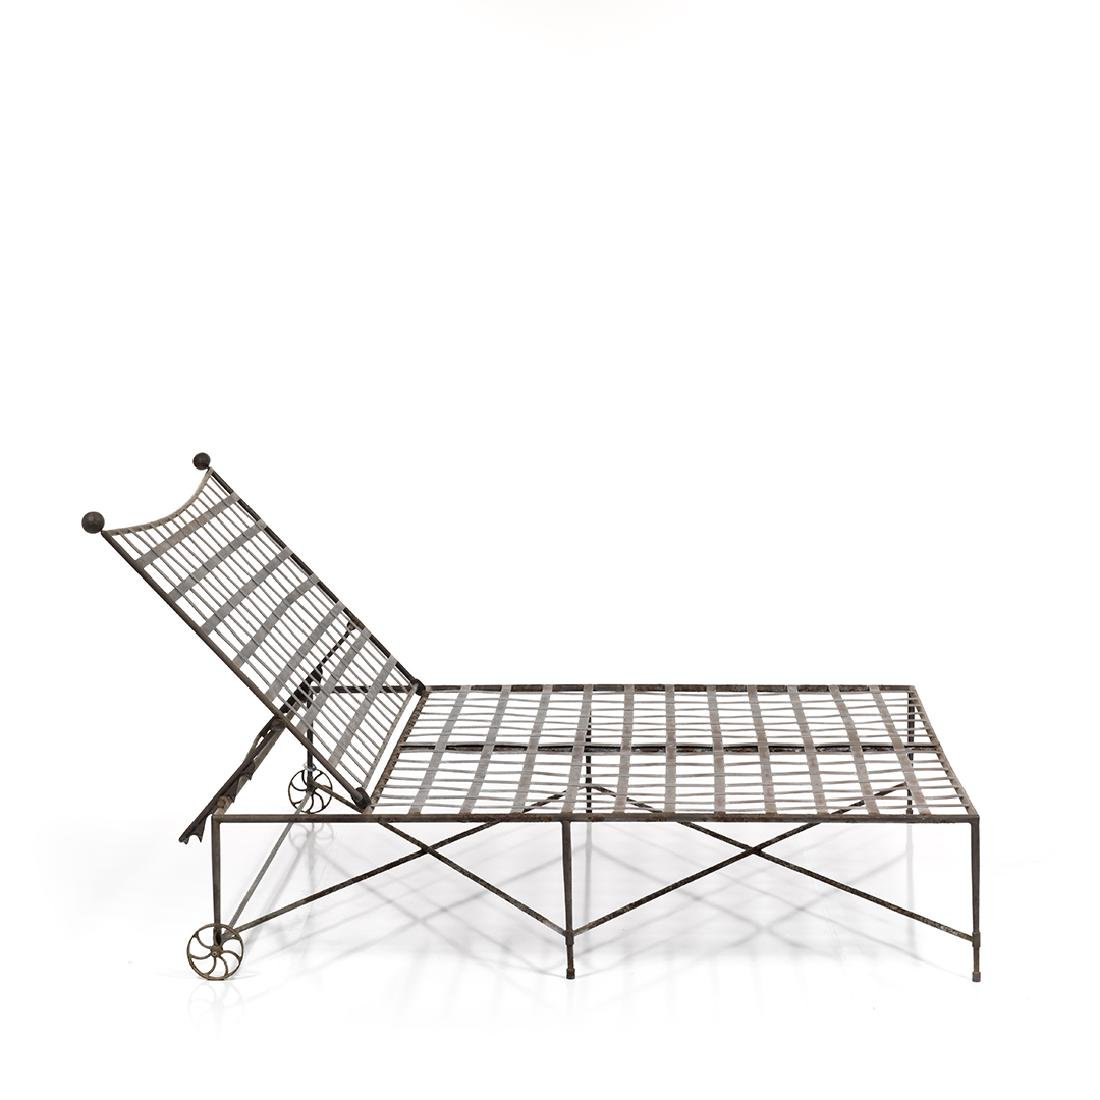 Double Wide Iron Chaise Lounges (2) - 3